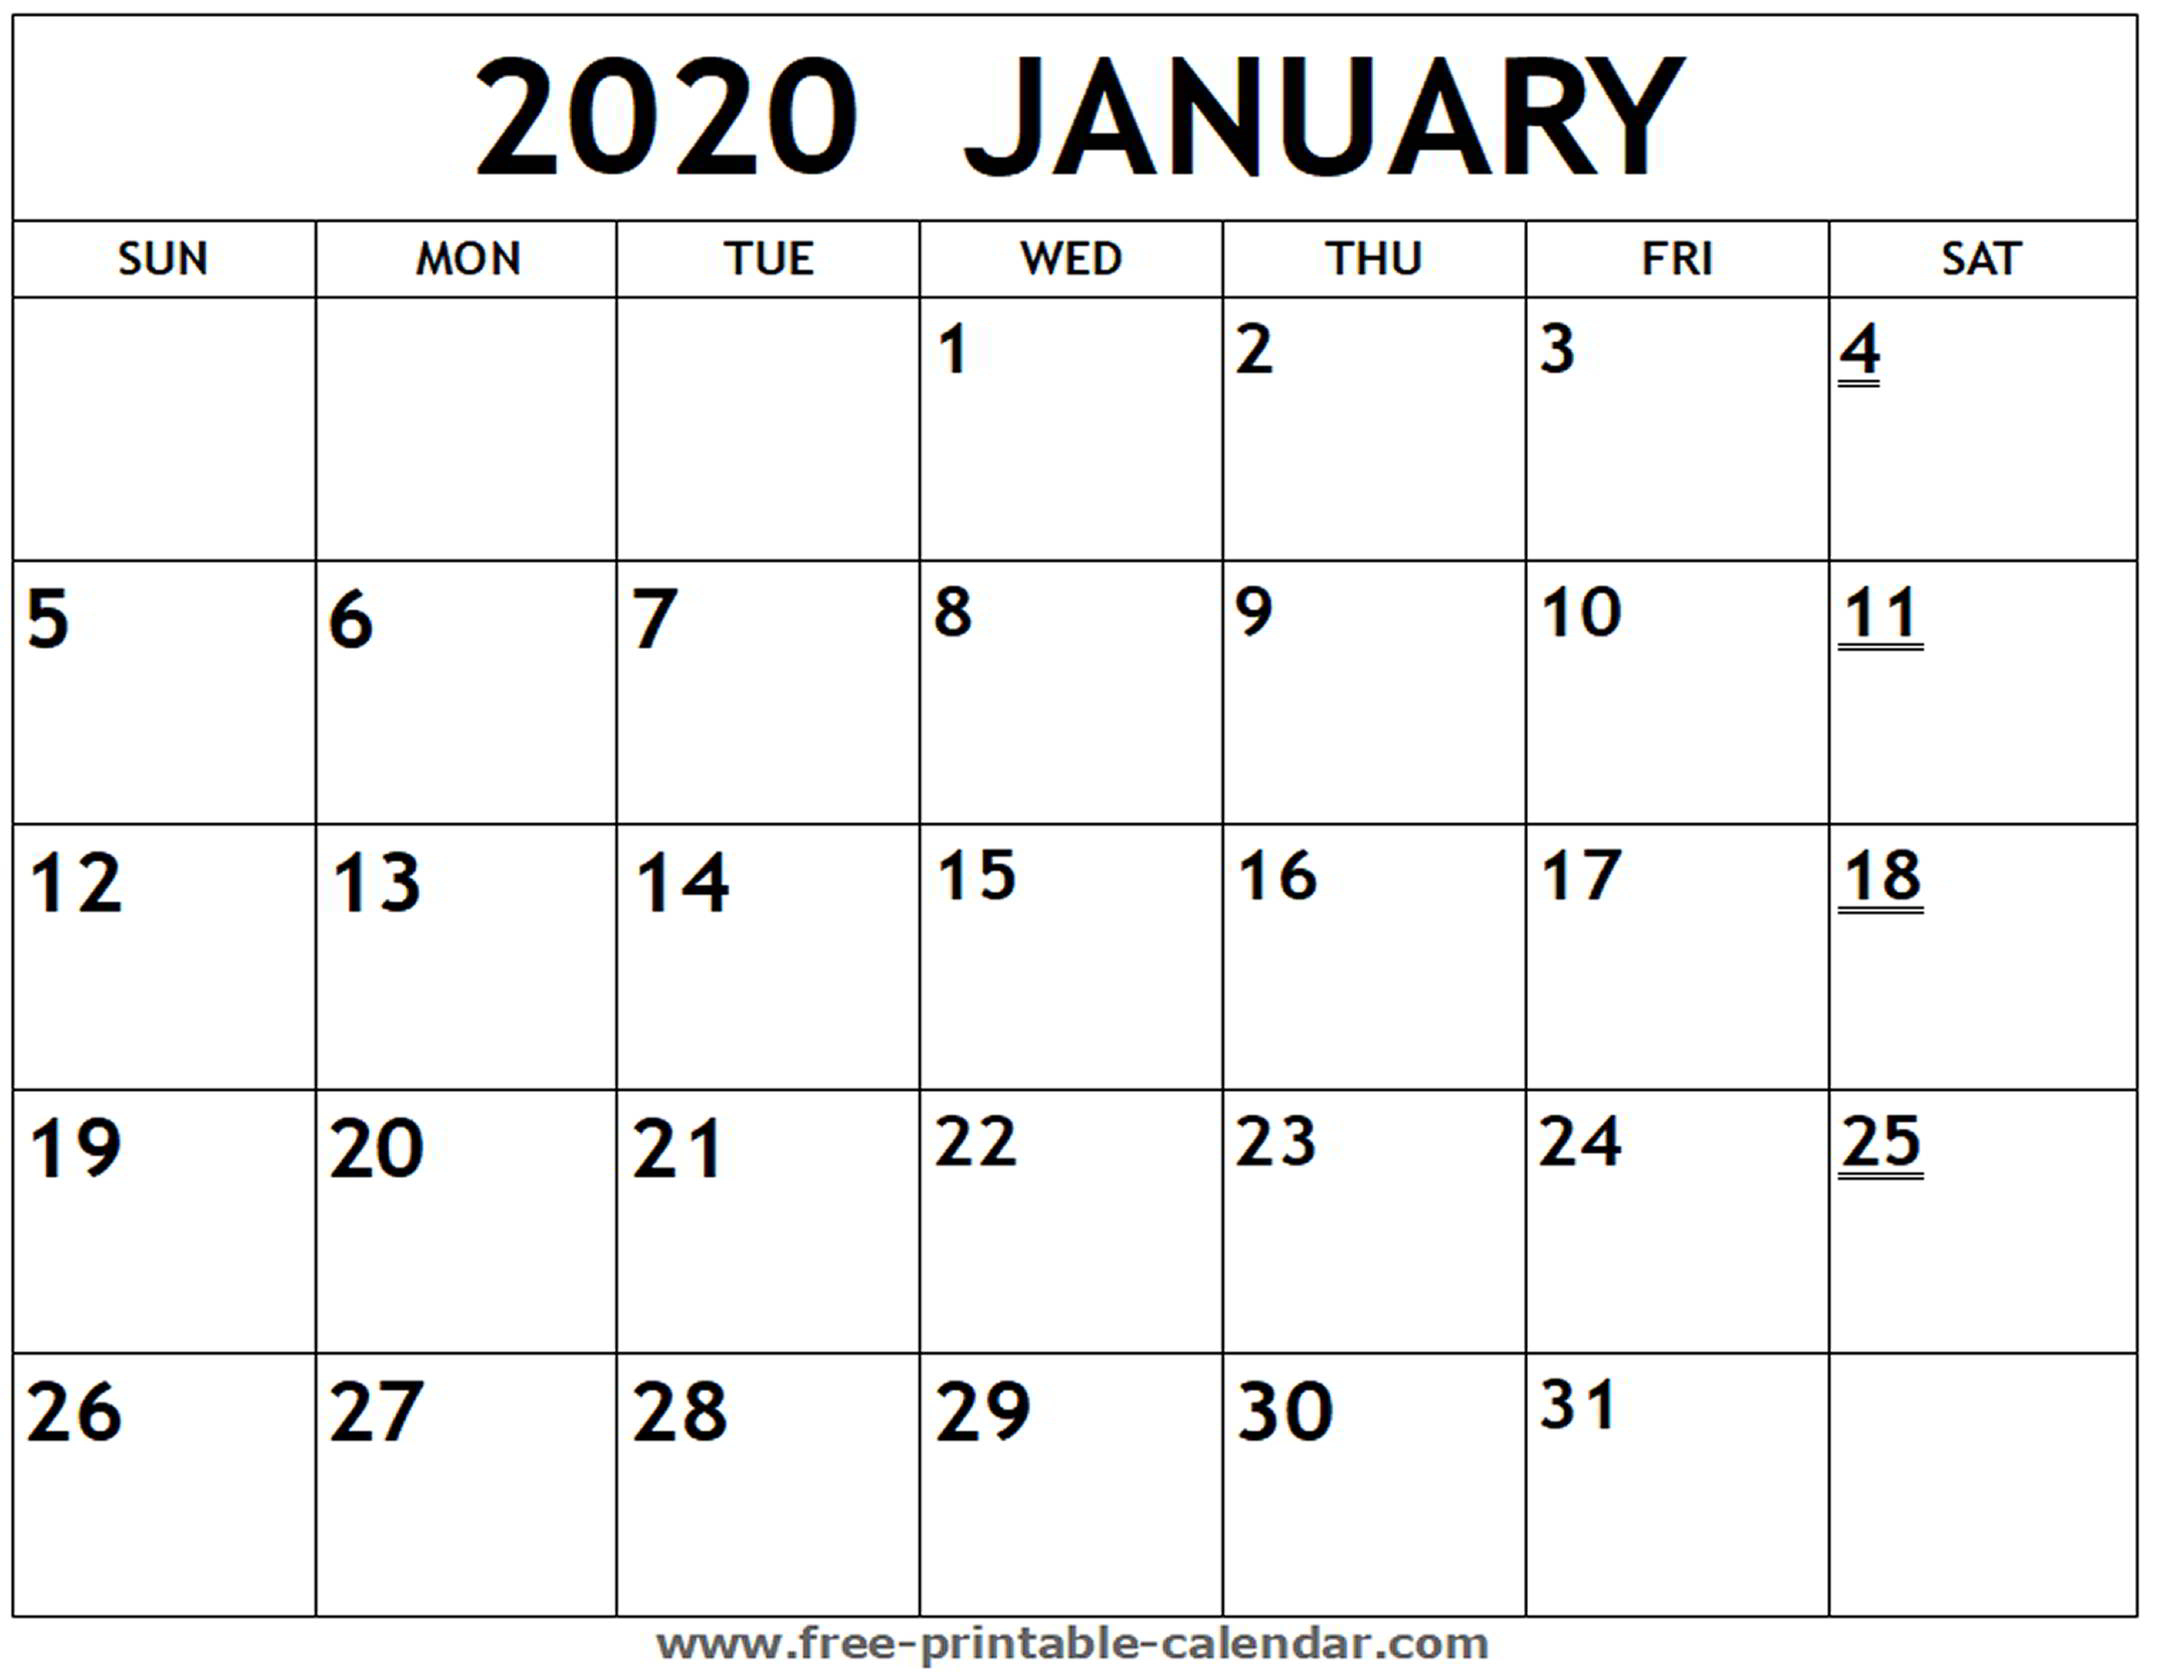 January Monthly Calendar 2020  Bolan.horizonconsulting.co with regard to Michel Zbinden December 2020